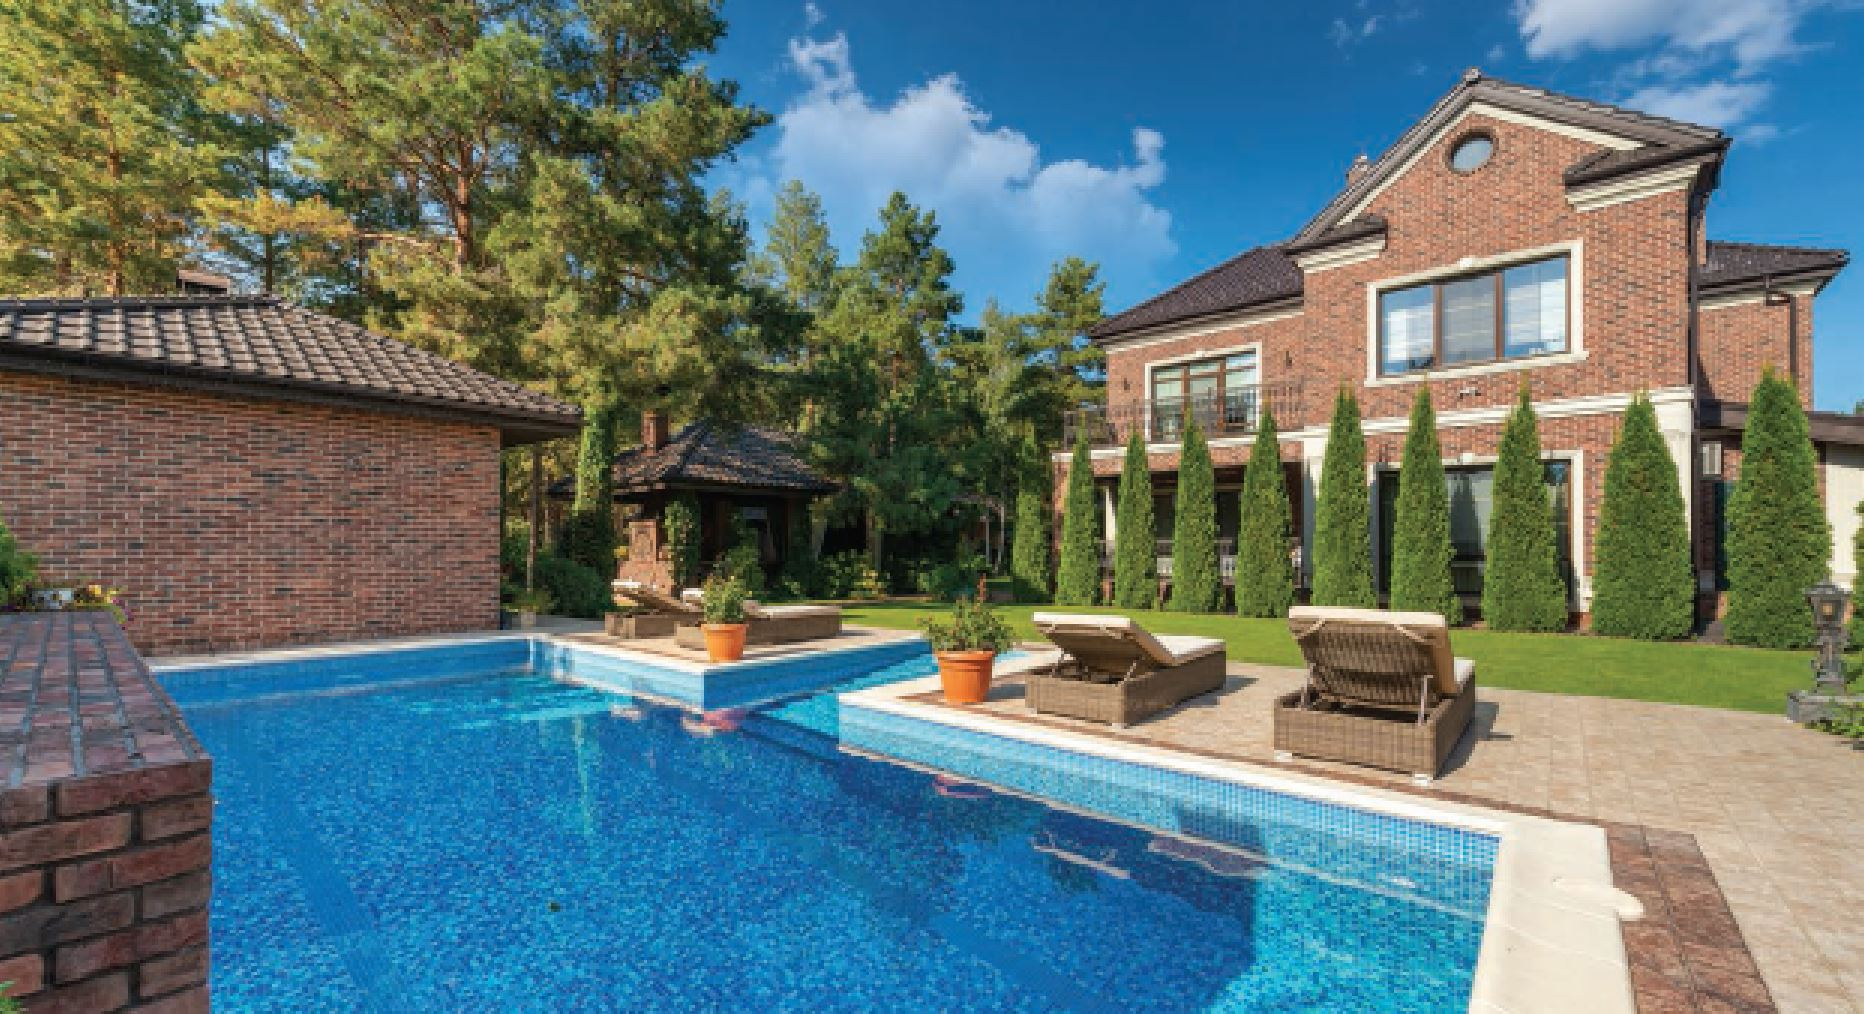 Luxury home market Report for North America Luxury Home Yard June 2021 ILHM Hoey Team 239RealEstateDeals.Com LLC